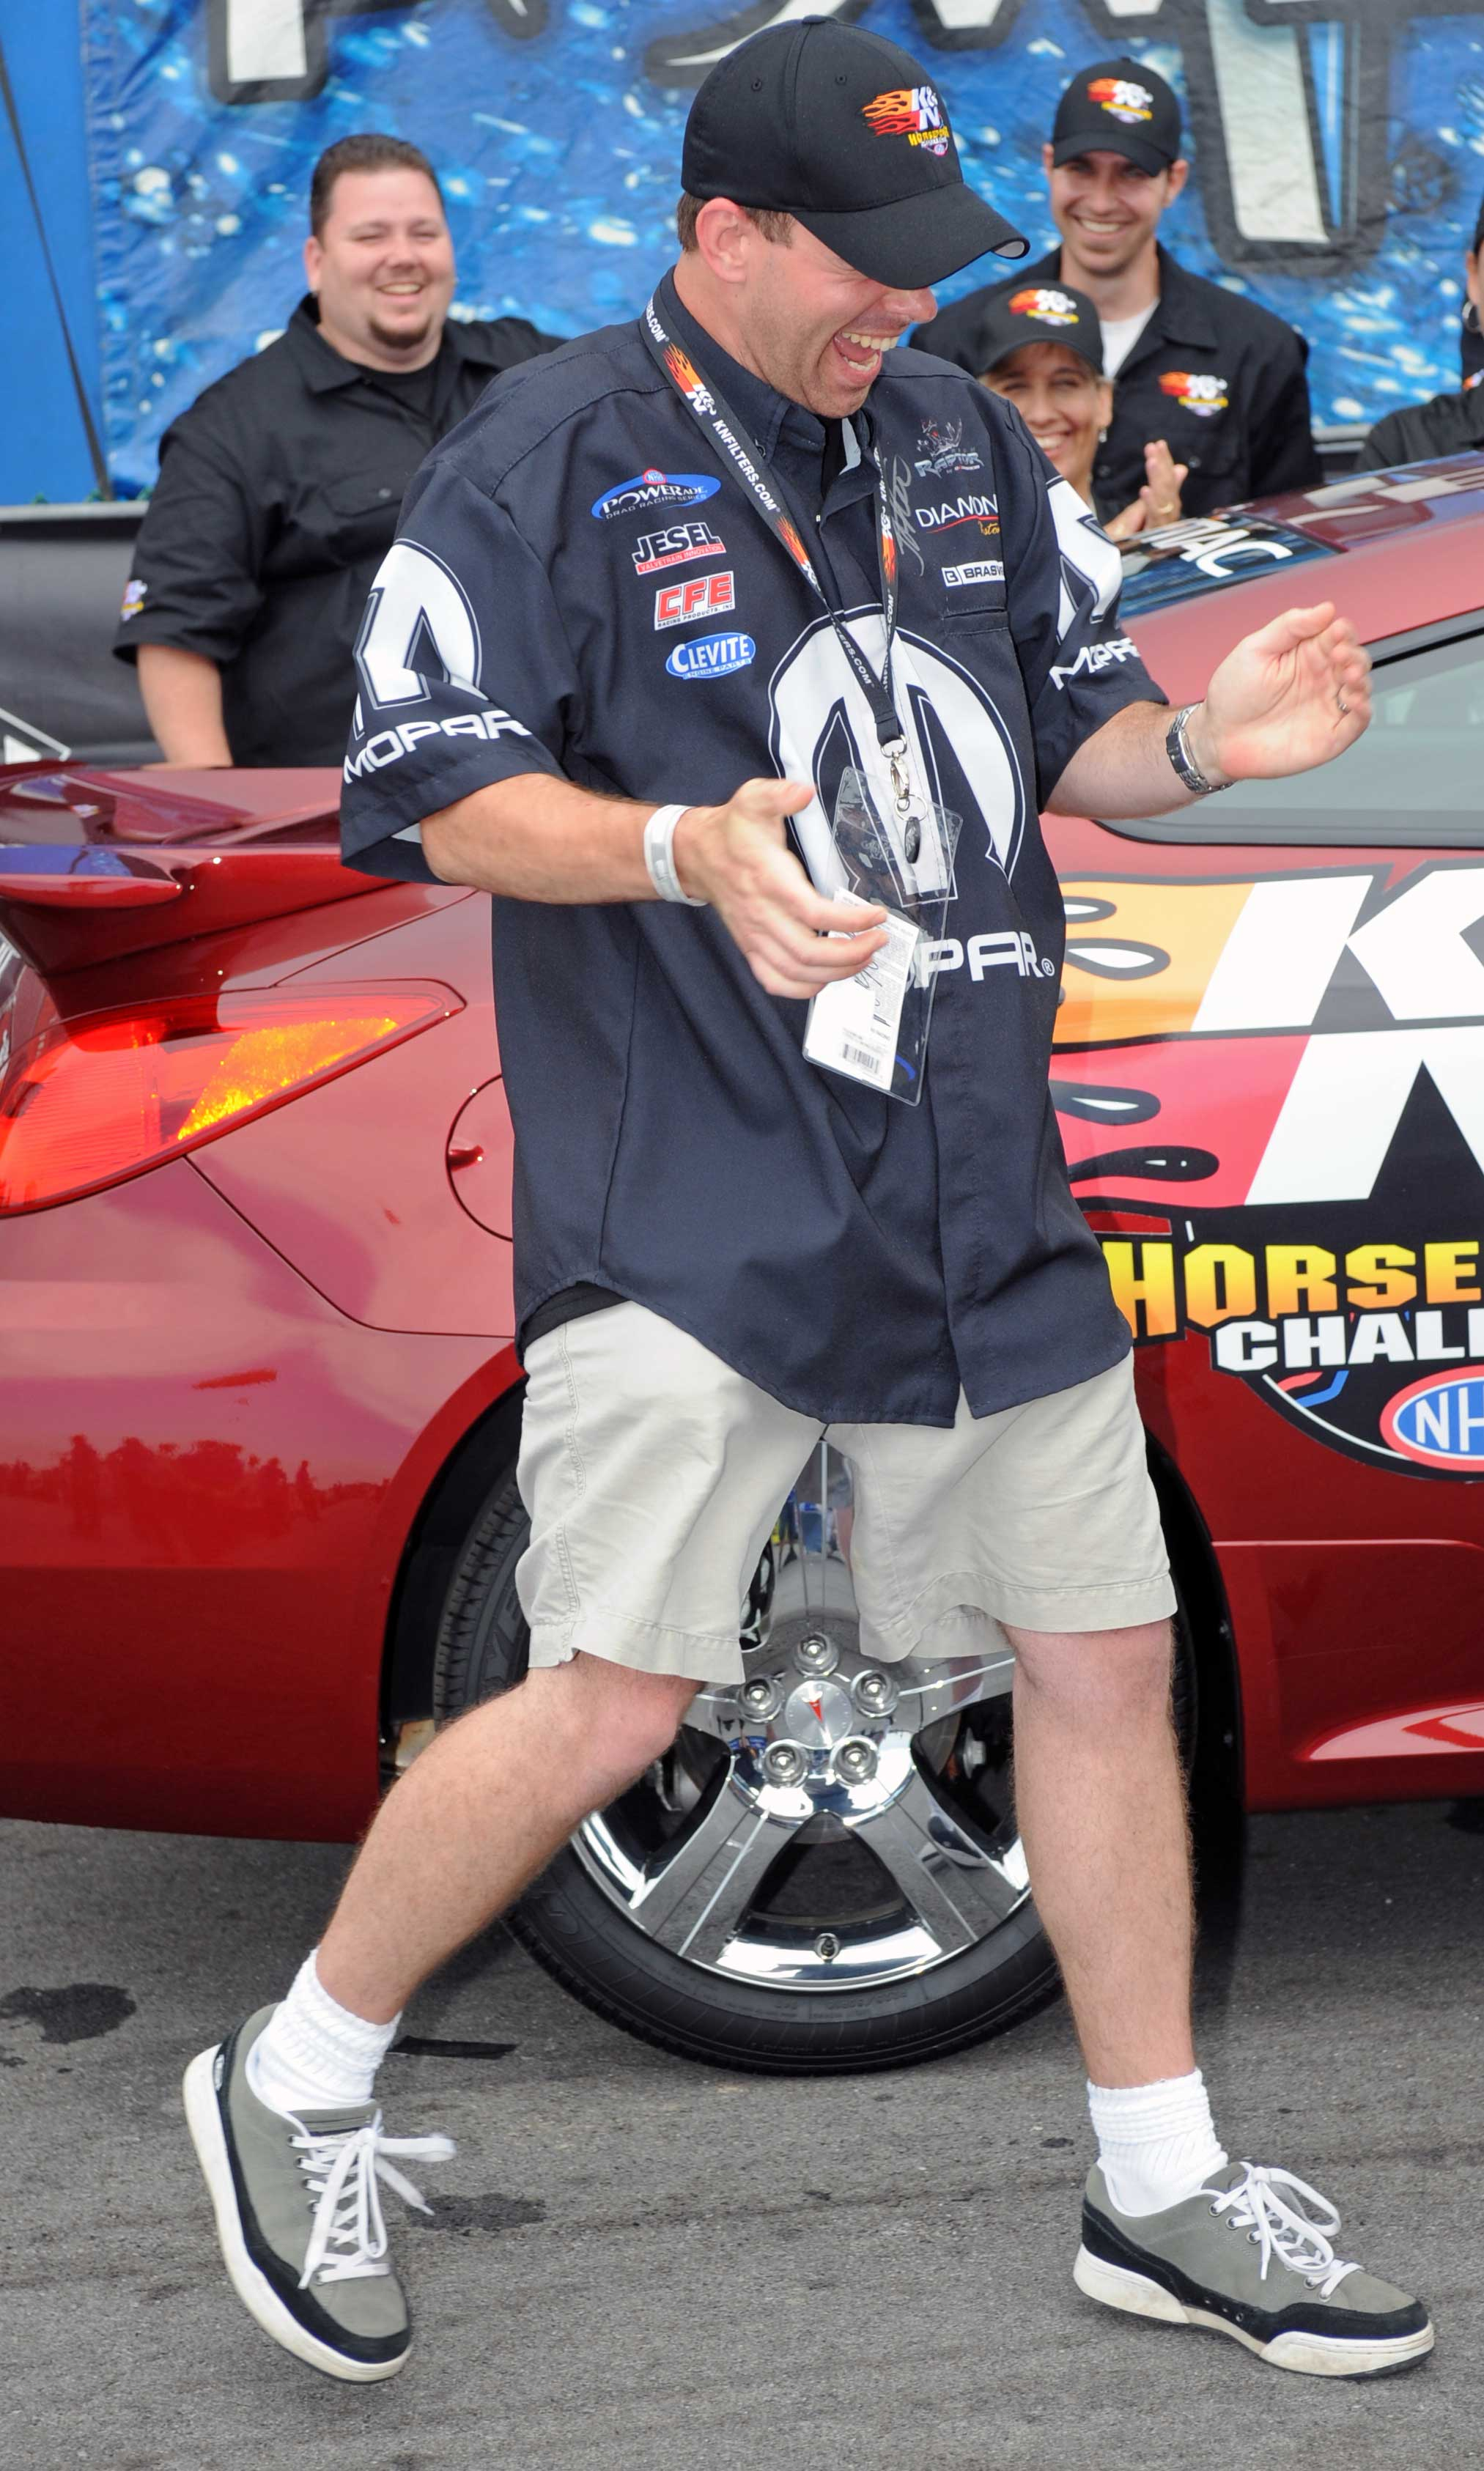 Edward Merry, Jr. Dances with Joy After Winning Pontiac GXP Coupe in K&N Engineering Horsepower Challenge Sweepstakes